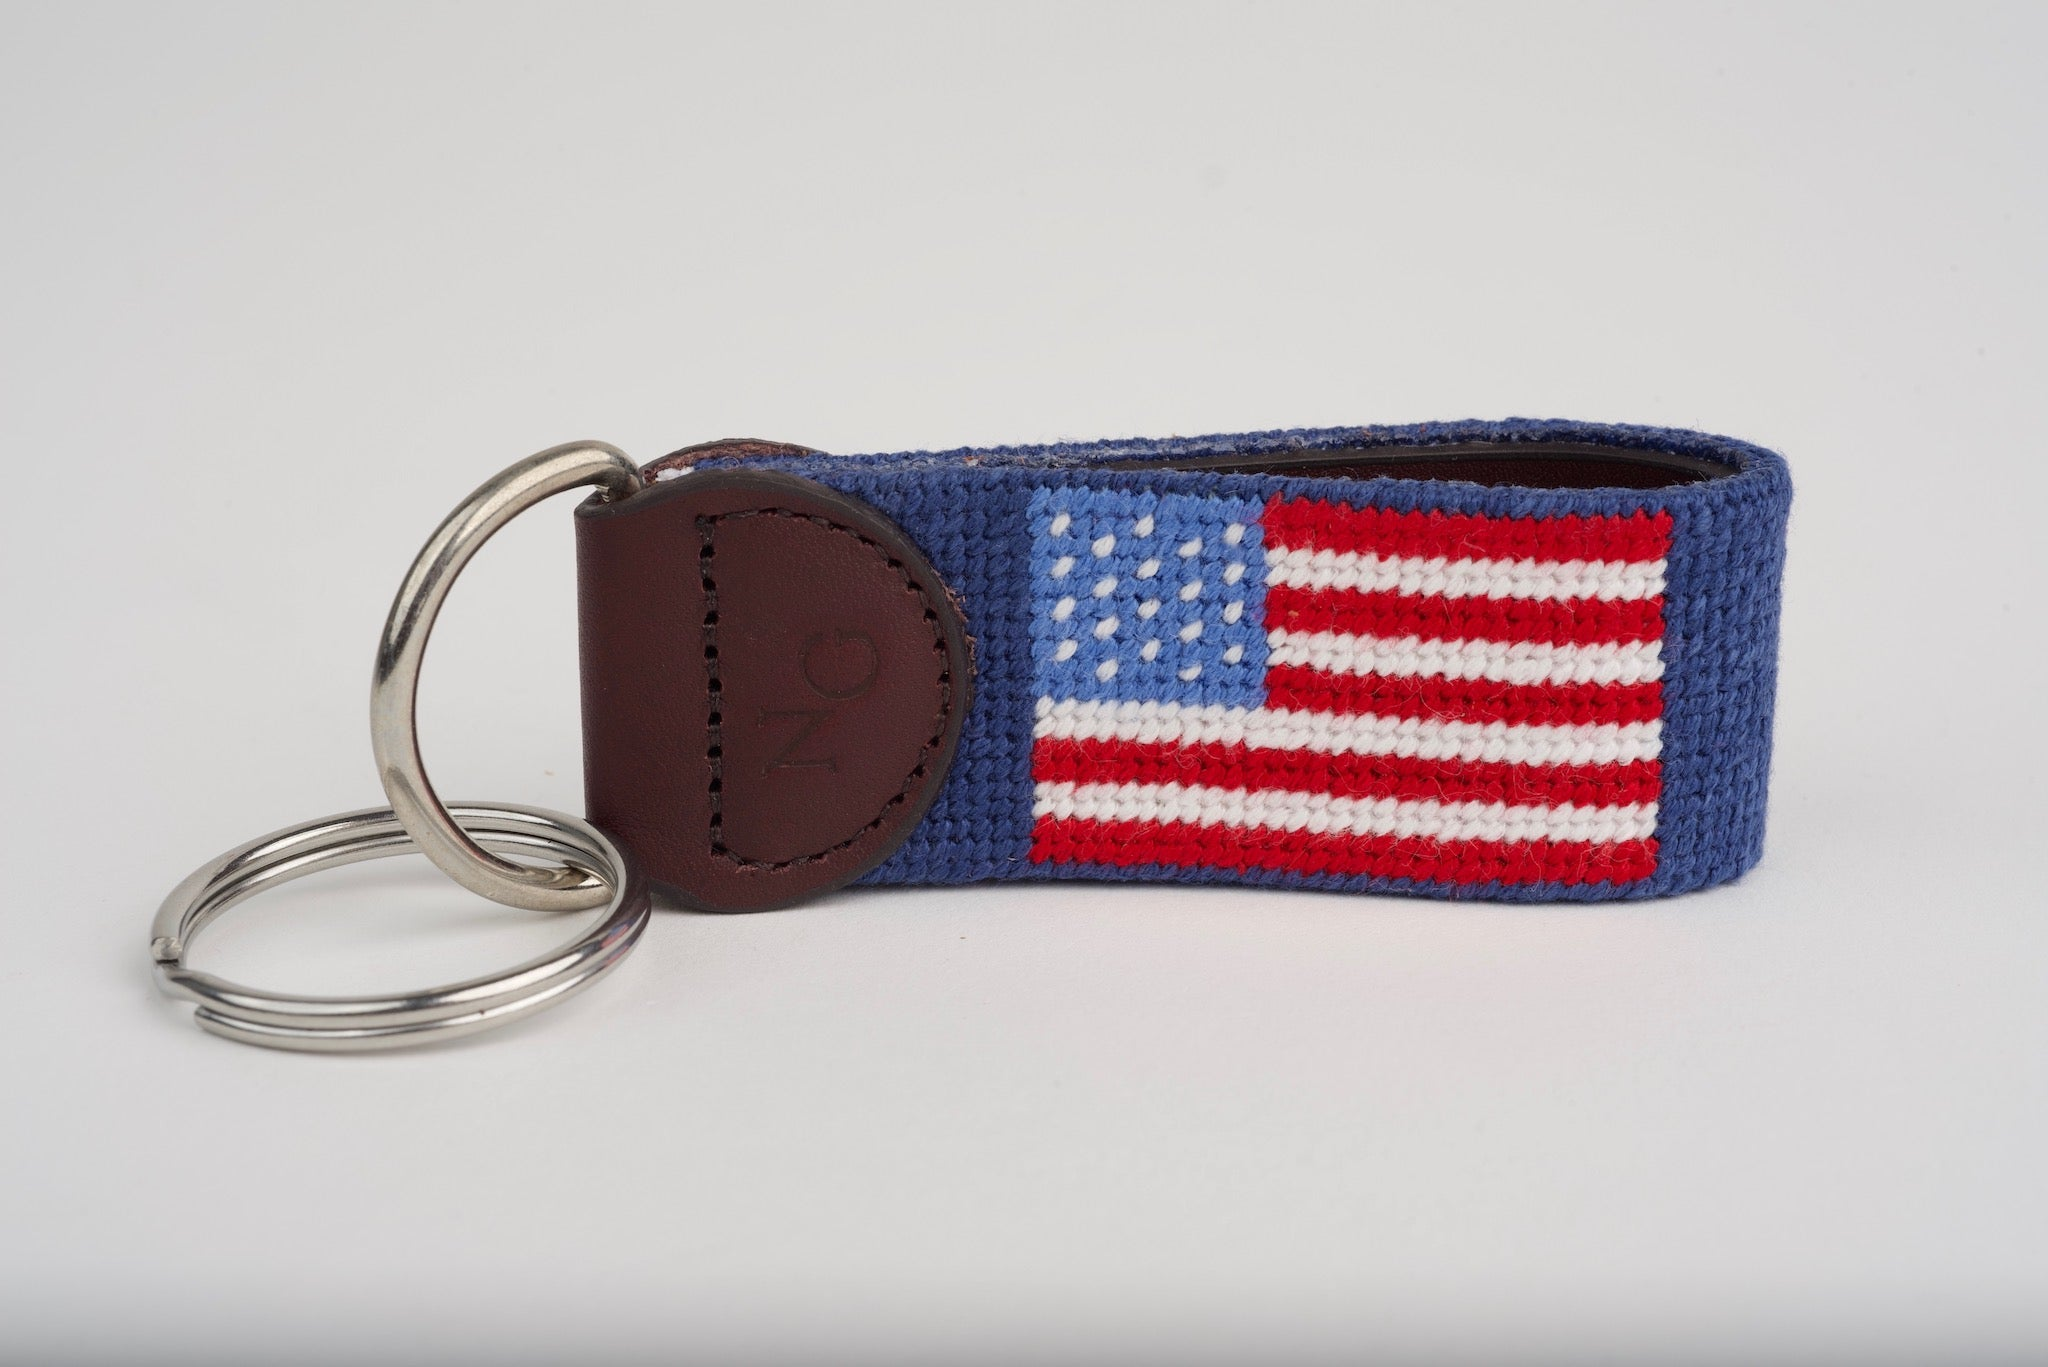 USA Navy Key Fob